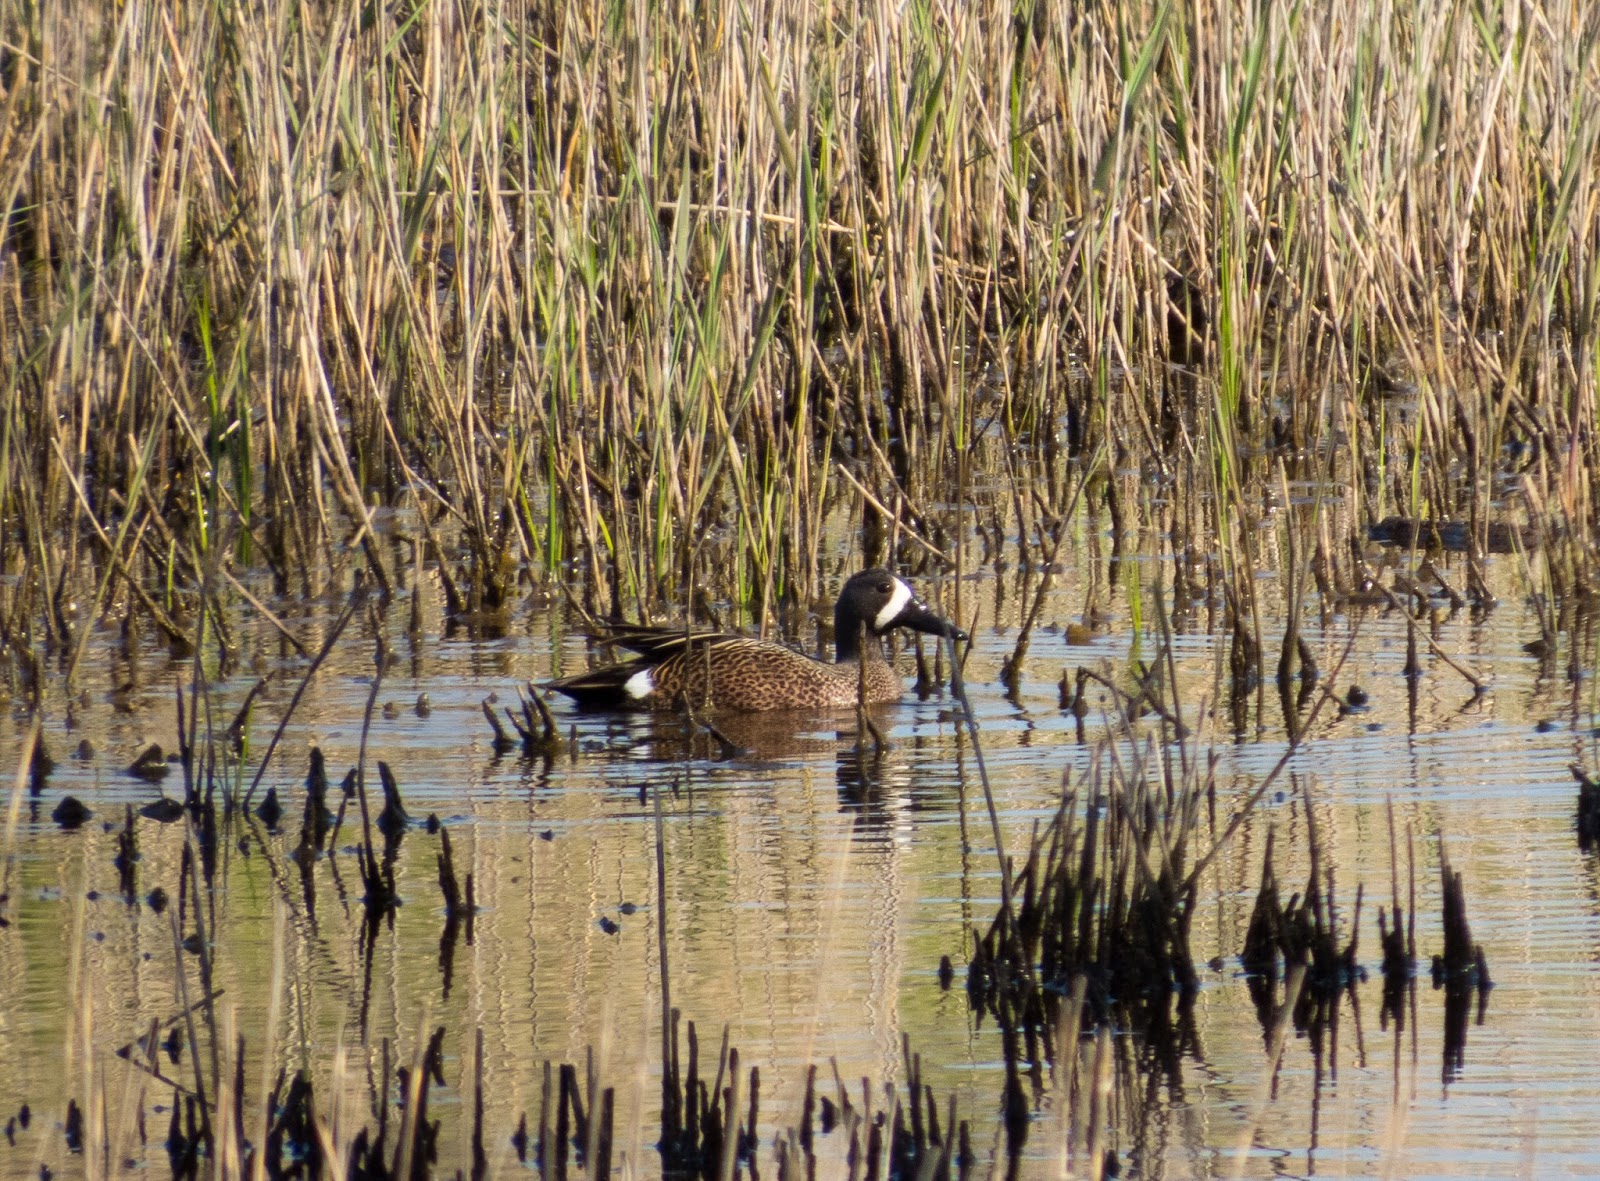 Blue-winged Teal, Donna Nook